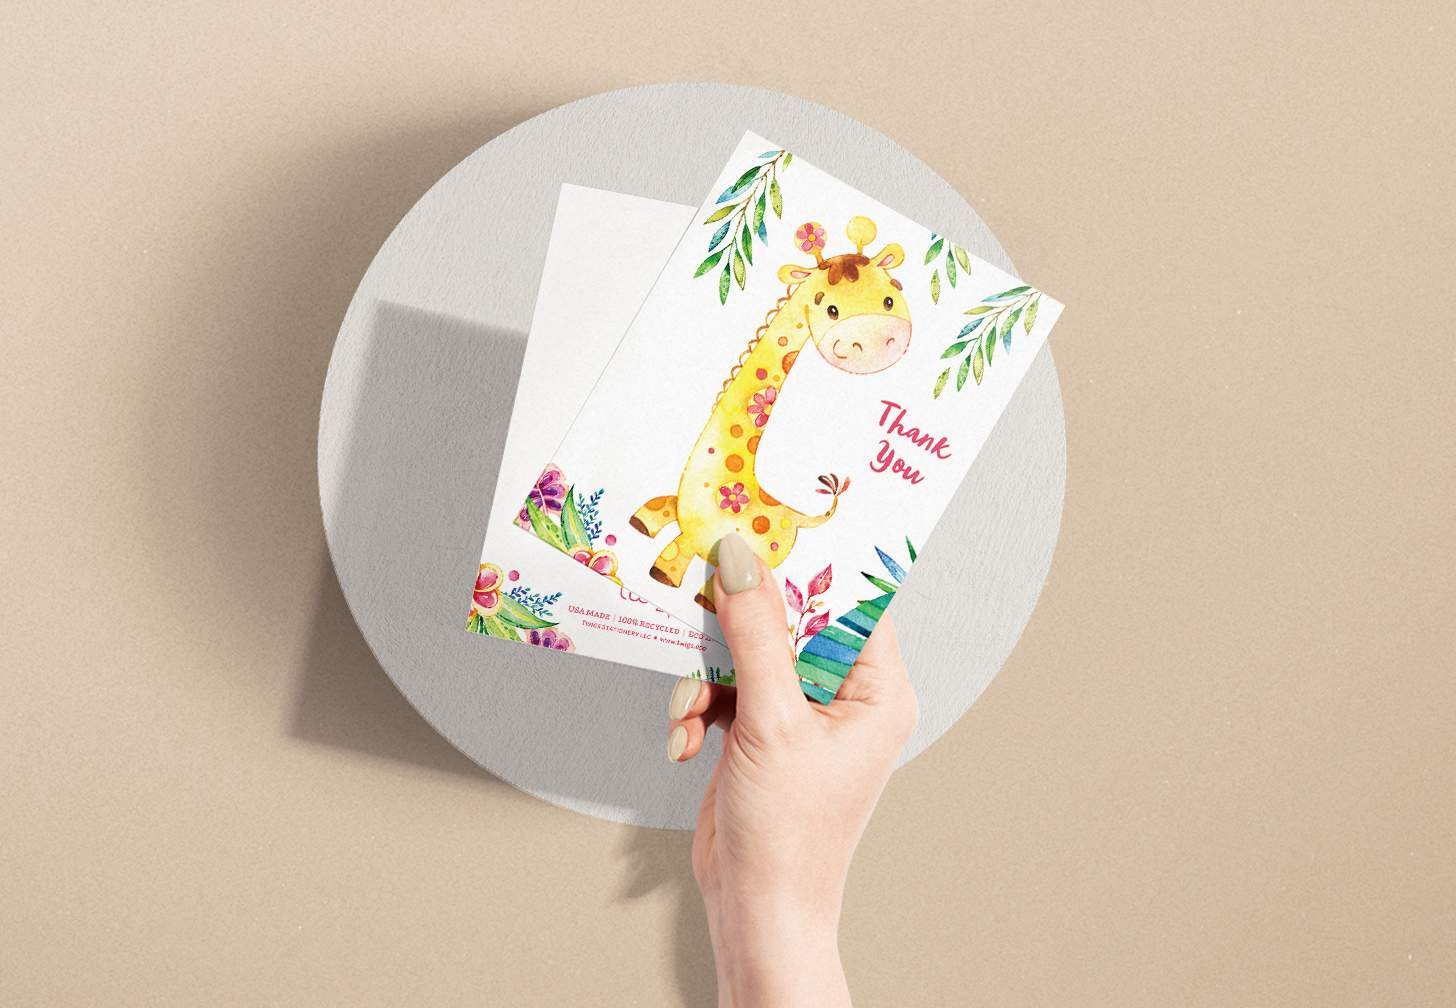 Woman's hand holding card with a cute yellow giraffe and plants design with a white envelope